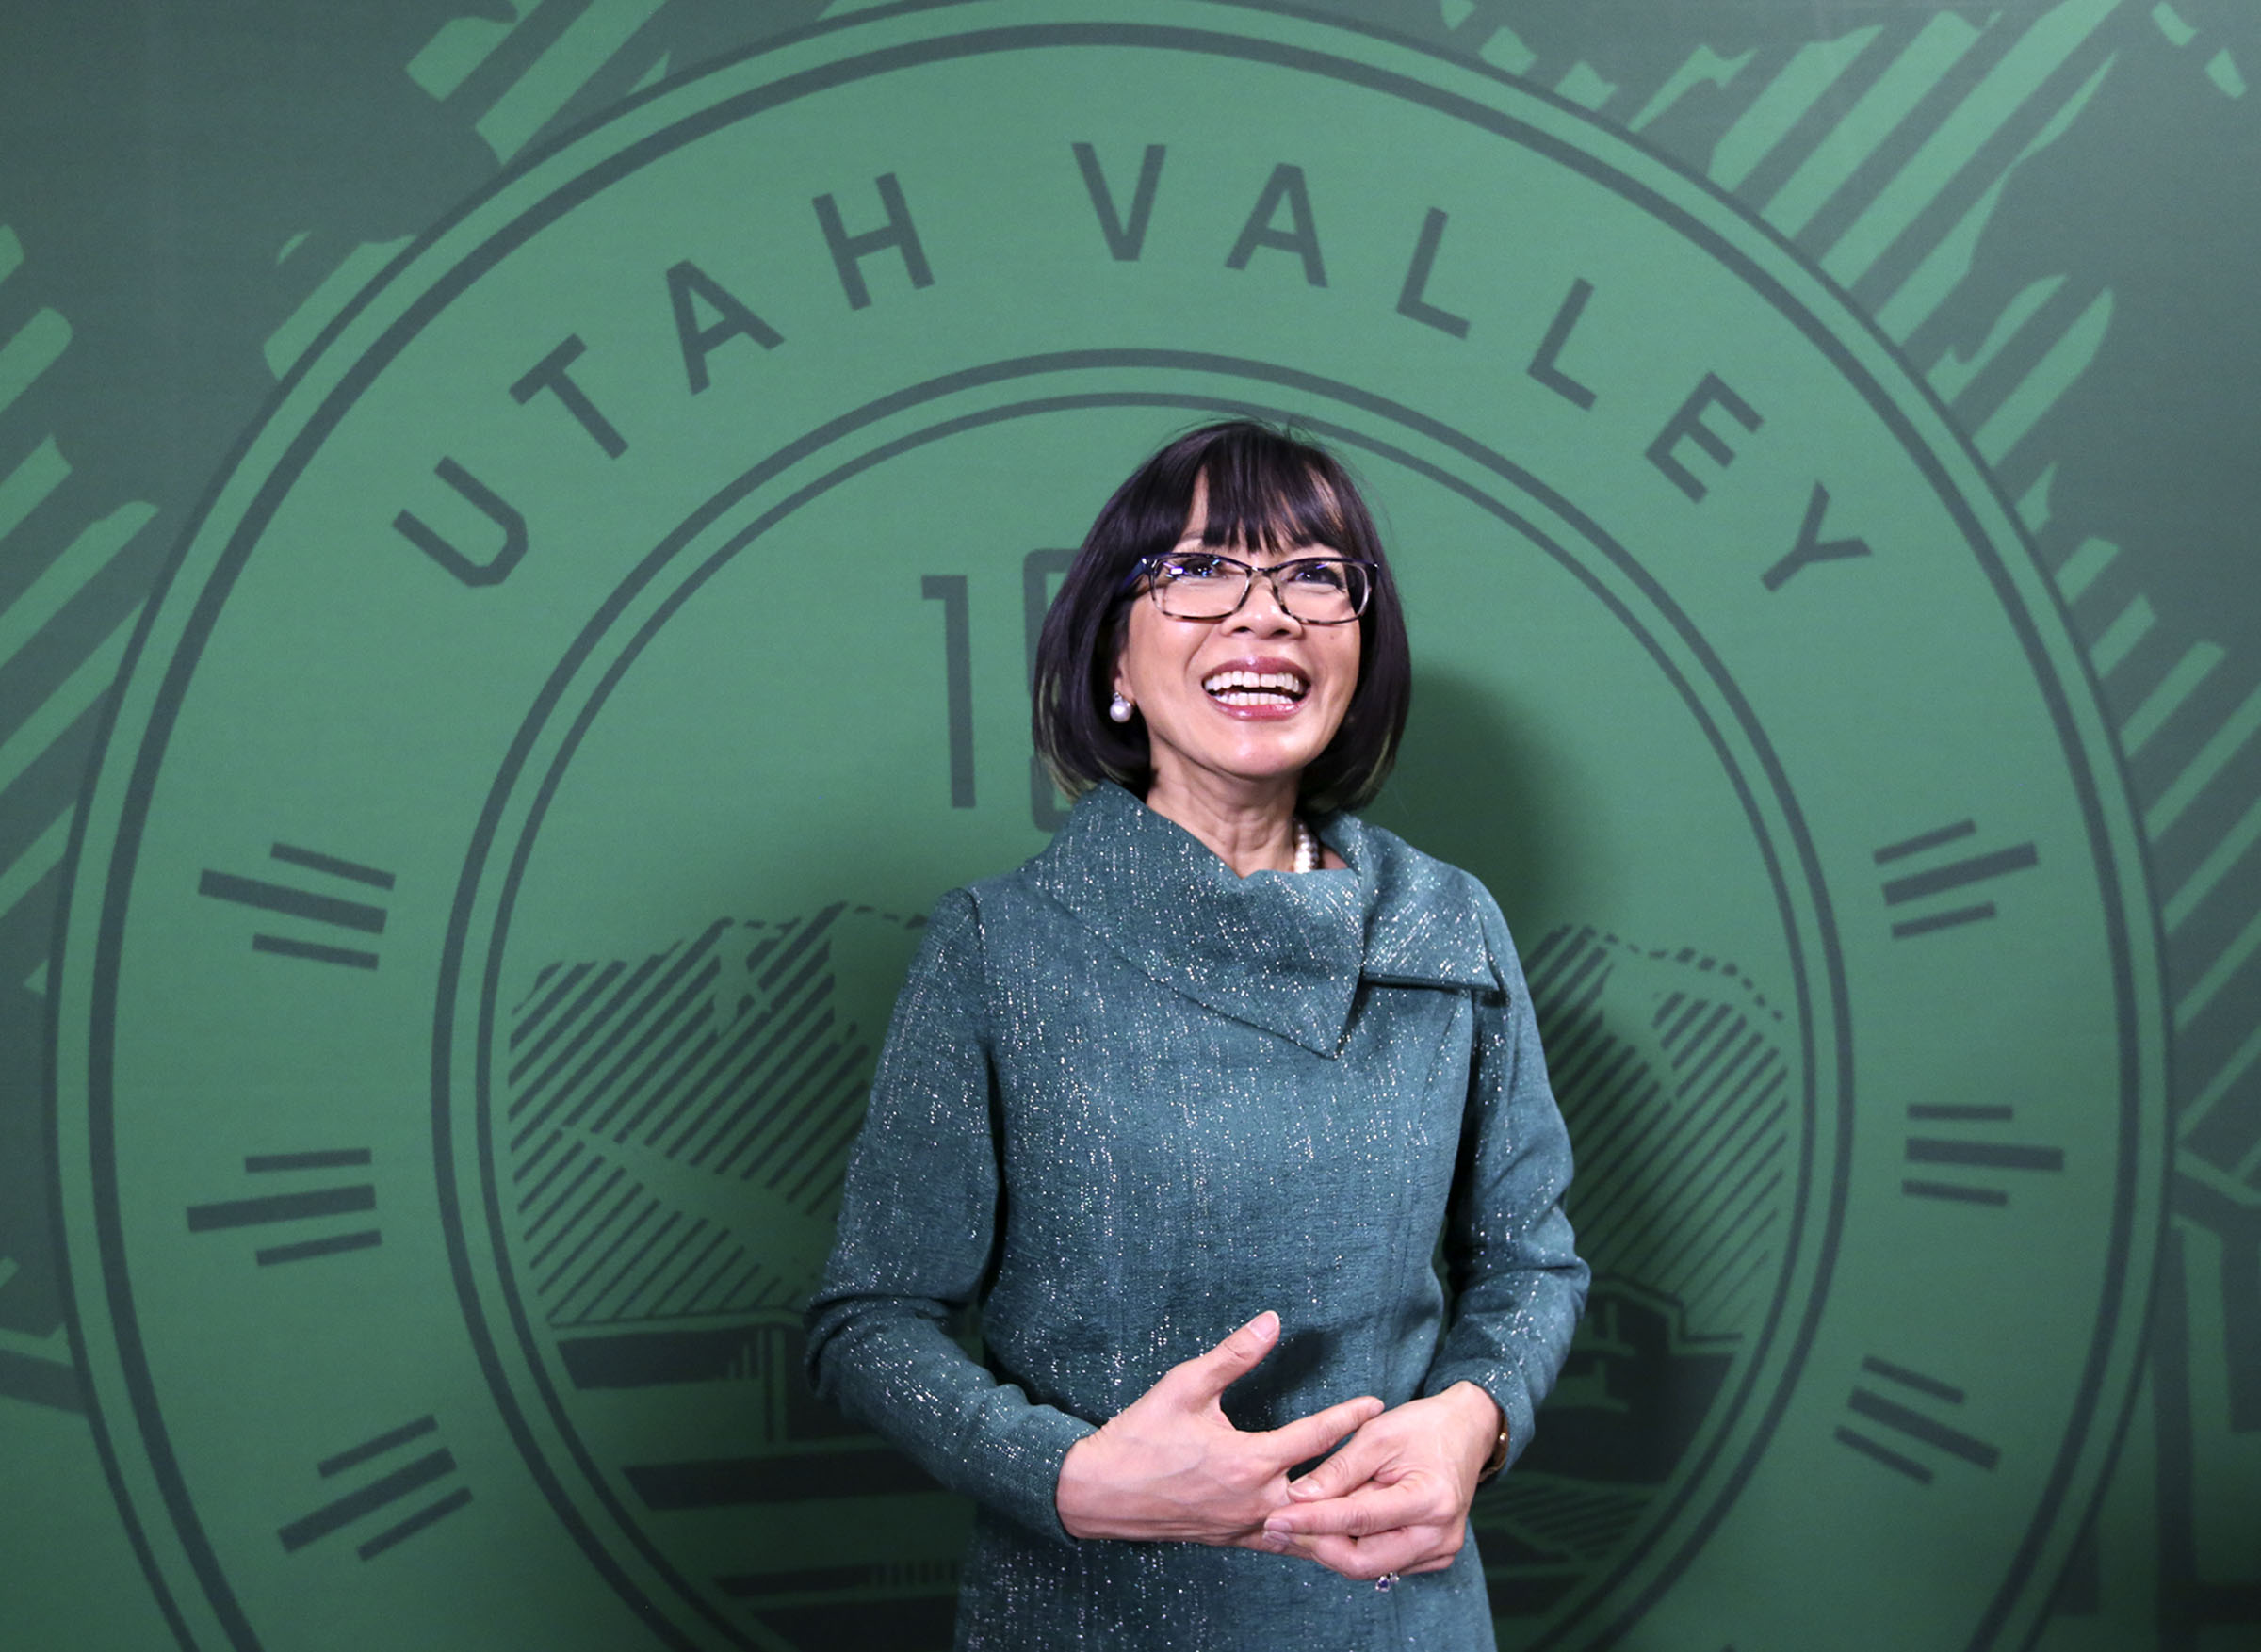 Astrid S. Tuminez, Utah Valley University's seventh president, talks to the media after her inauguration ceremony at the UVU Noorda Center for the Performing Arts in Orem on Wednesday, March 27, 2019.